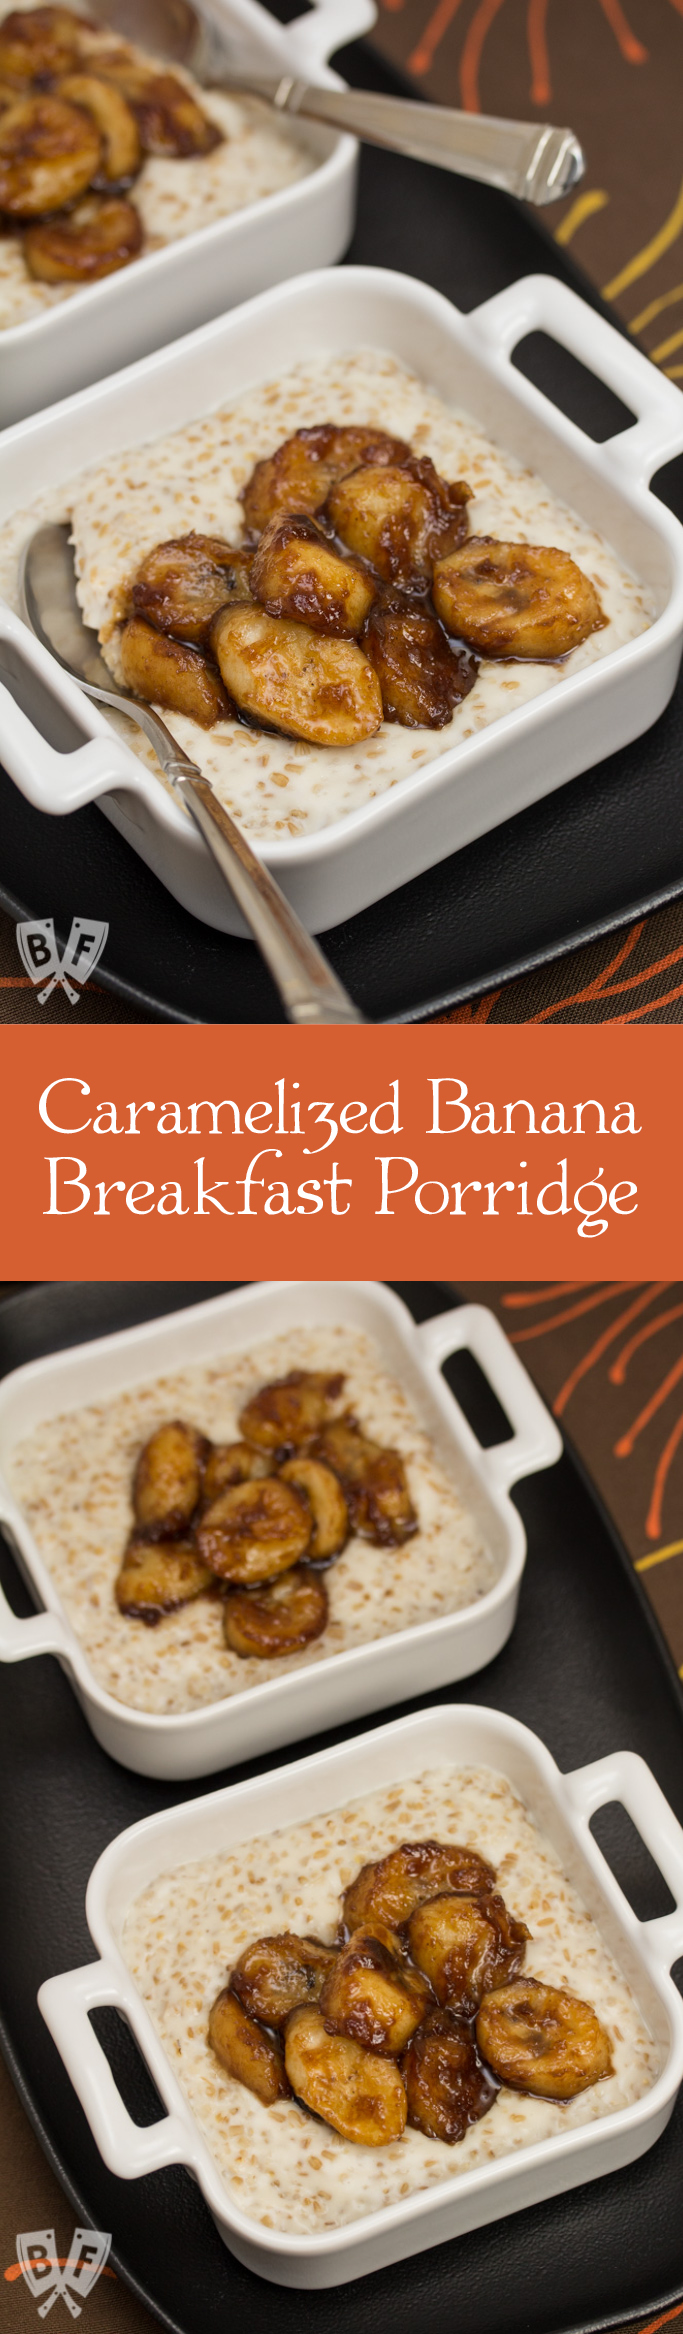 Caramelized Banana Breakfast Porridge: Coconut sugar turns into an ooey gooey topping for these creamy, vanilla-scented bowls of comfort food.